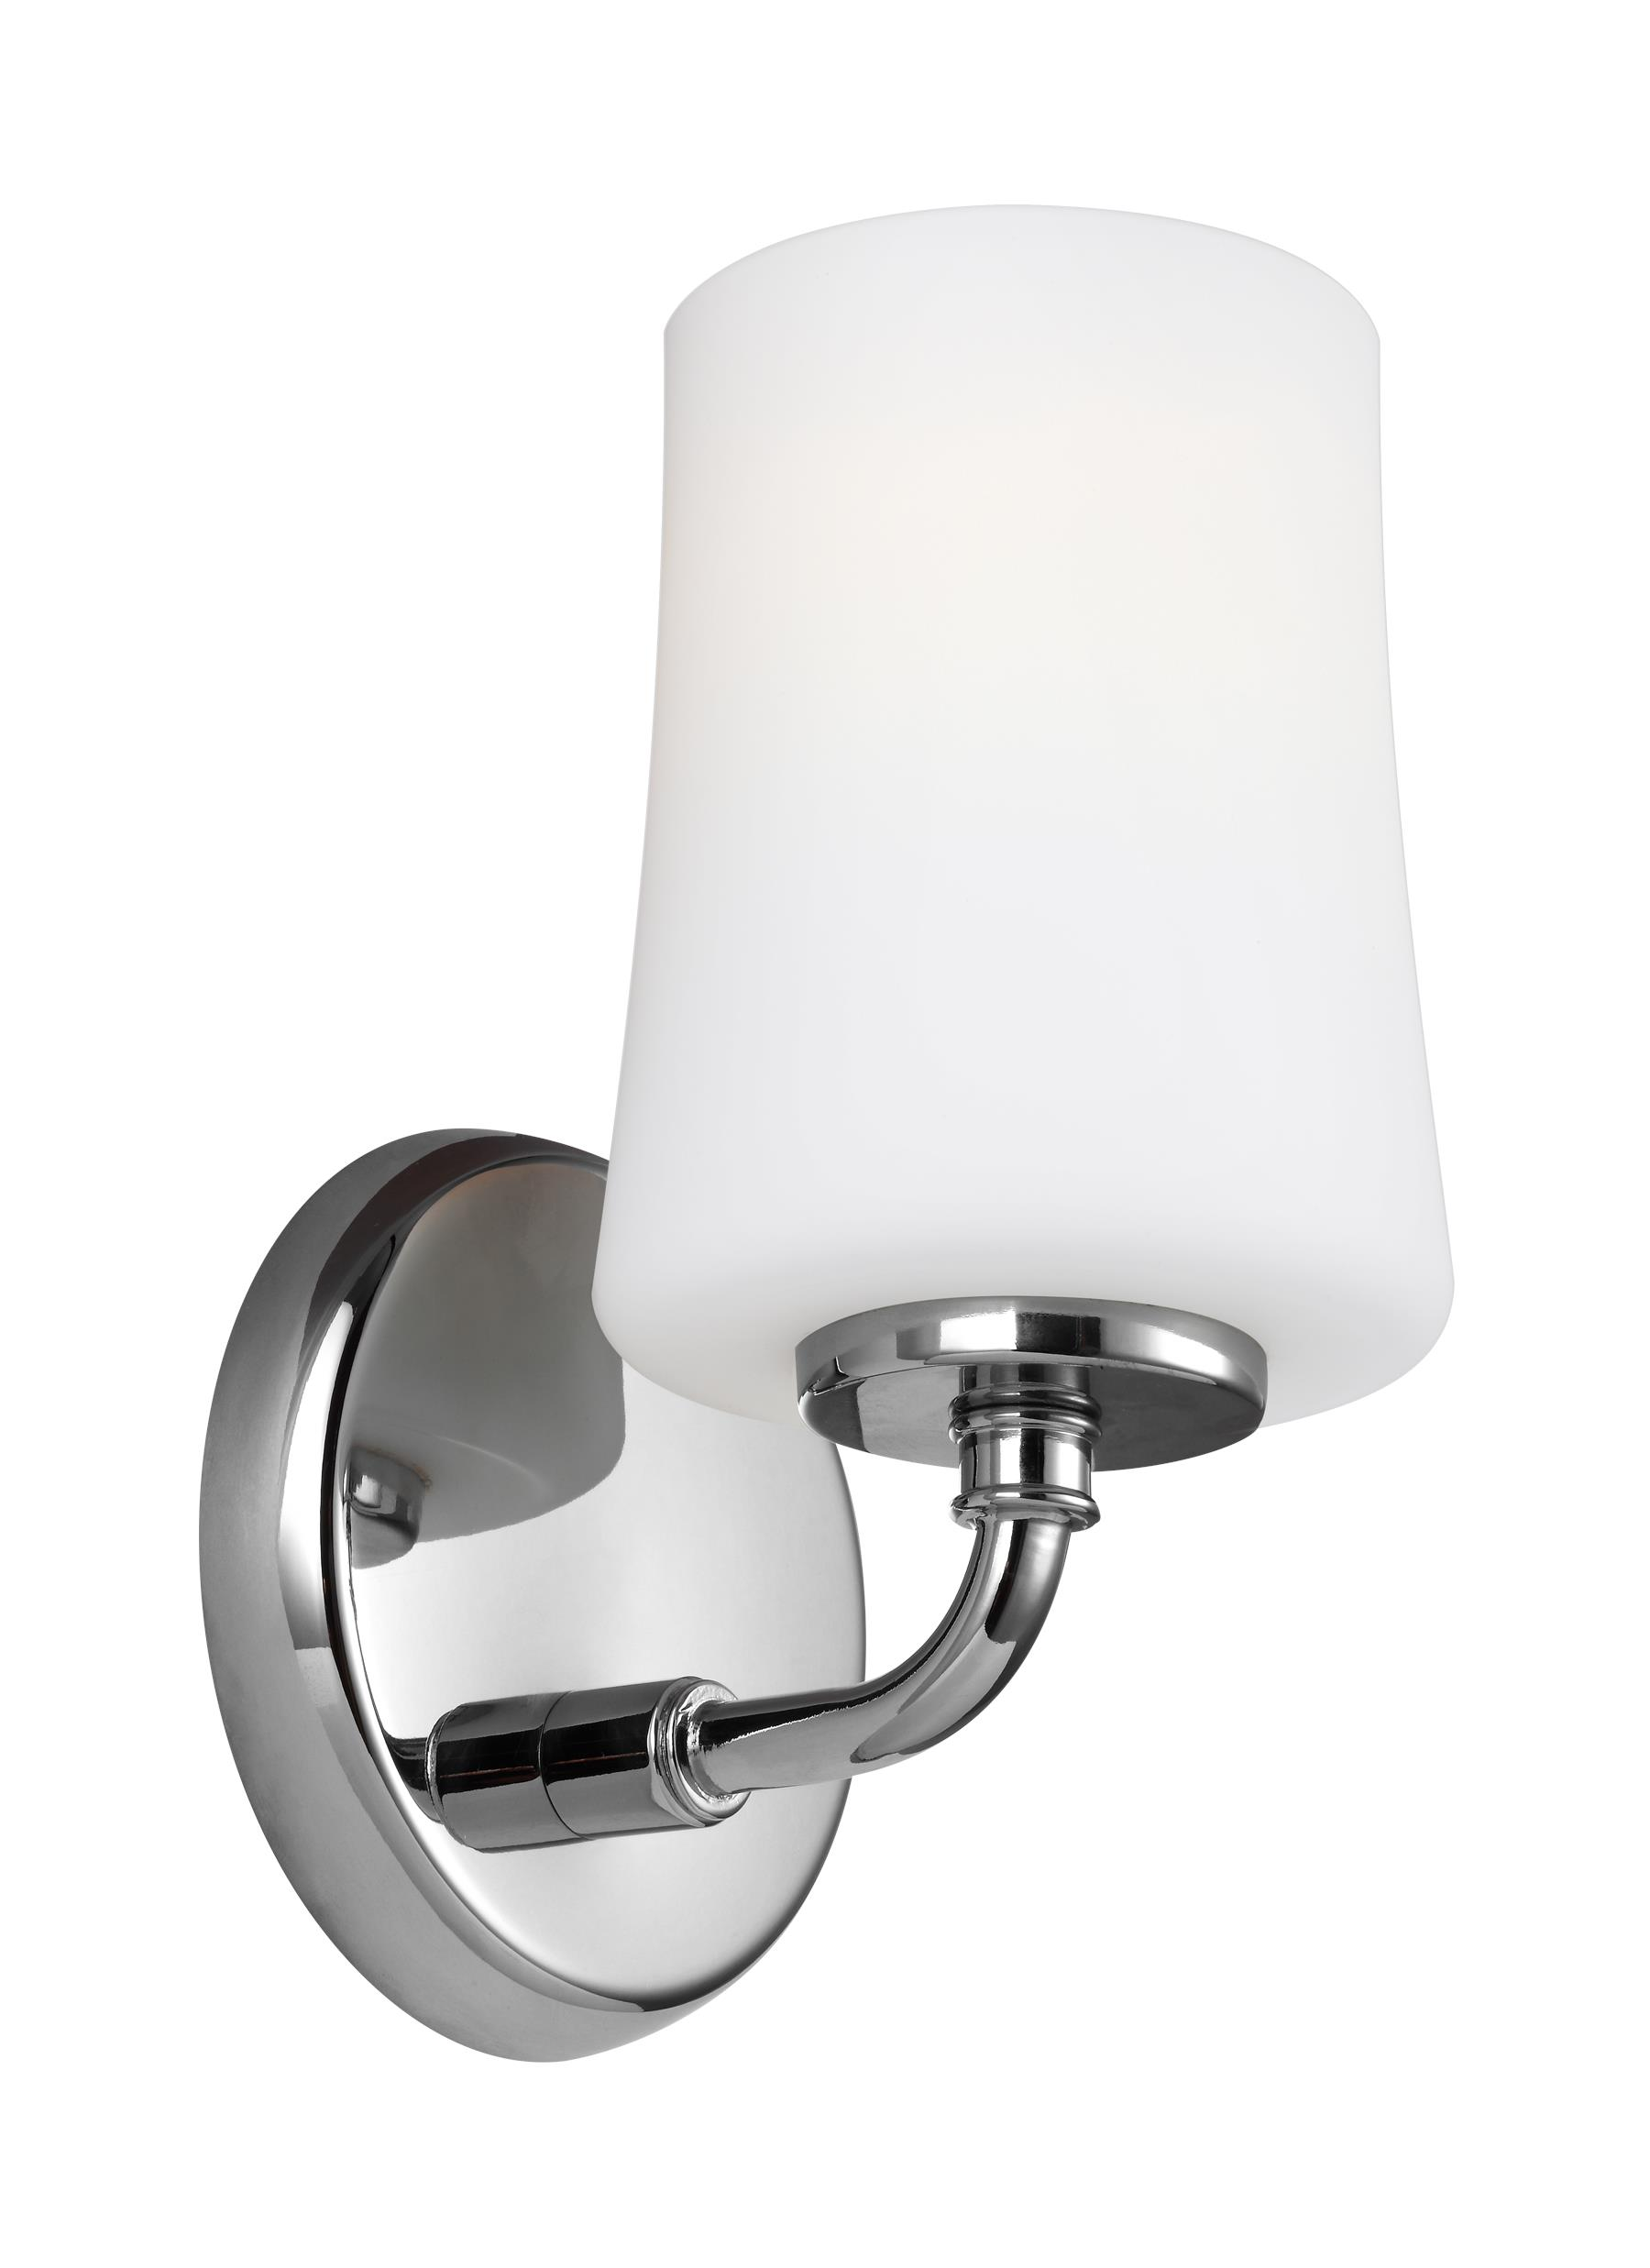 Bathroom Lighting Sconces Chrome vs23601ch,1 - light wall sconce,chrome